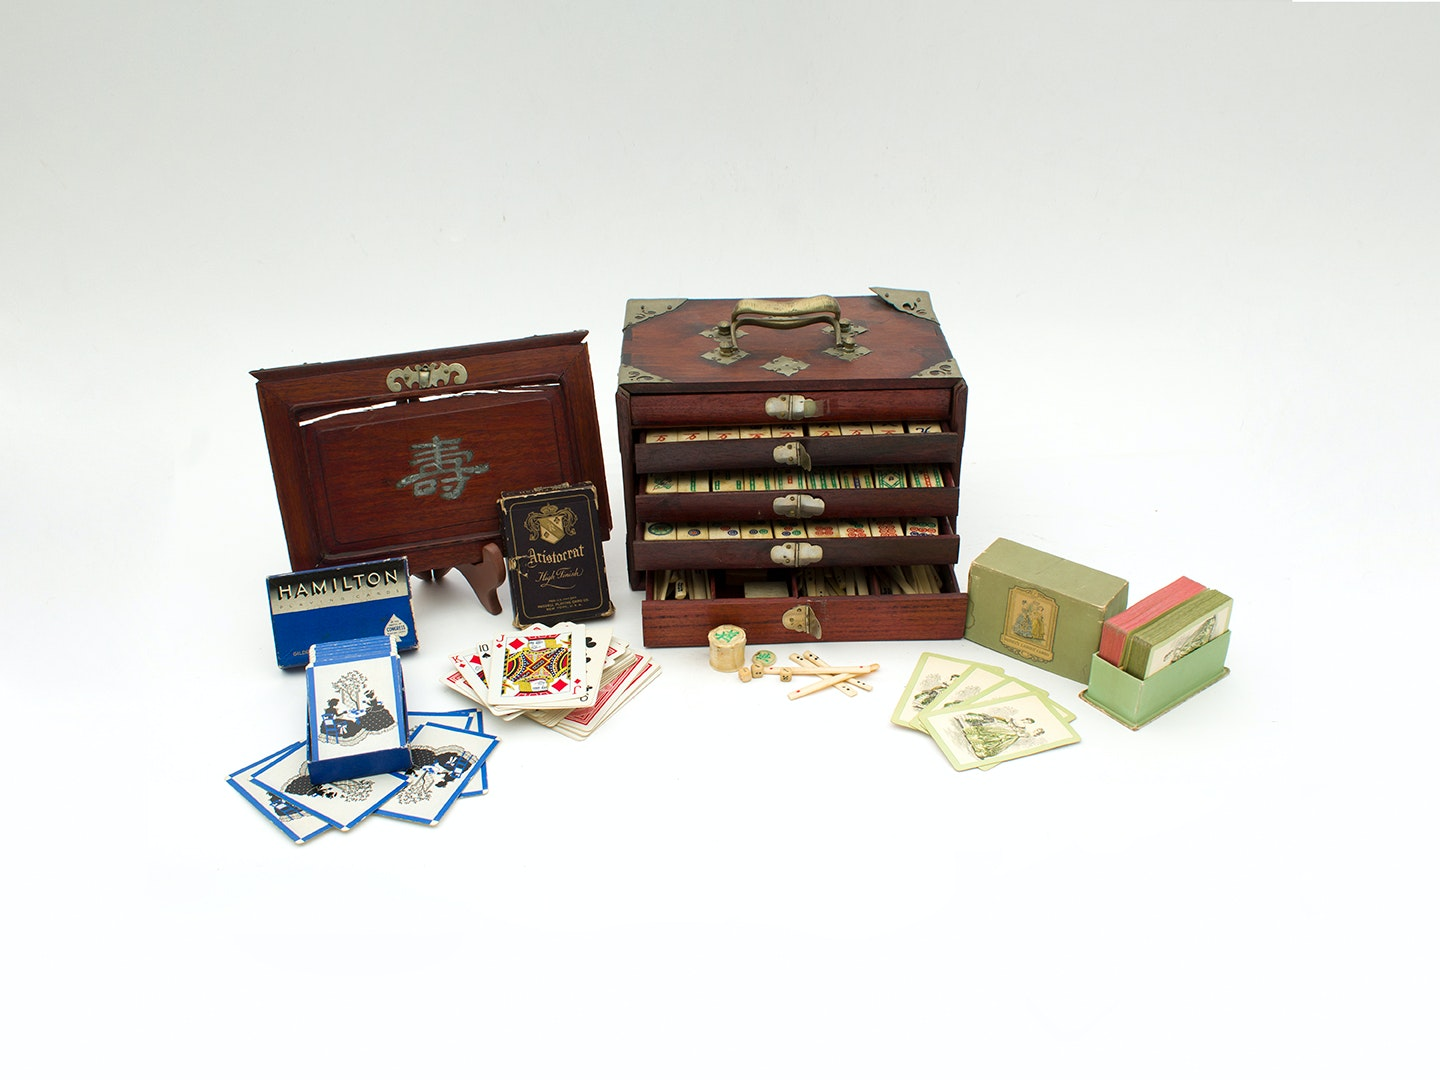 Chinese Mahjong Game in Wooden Chest and Vintage Playing Card Sets